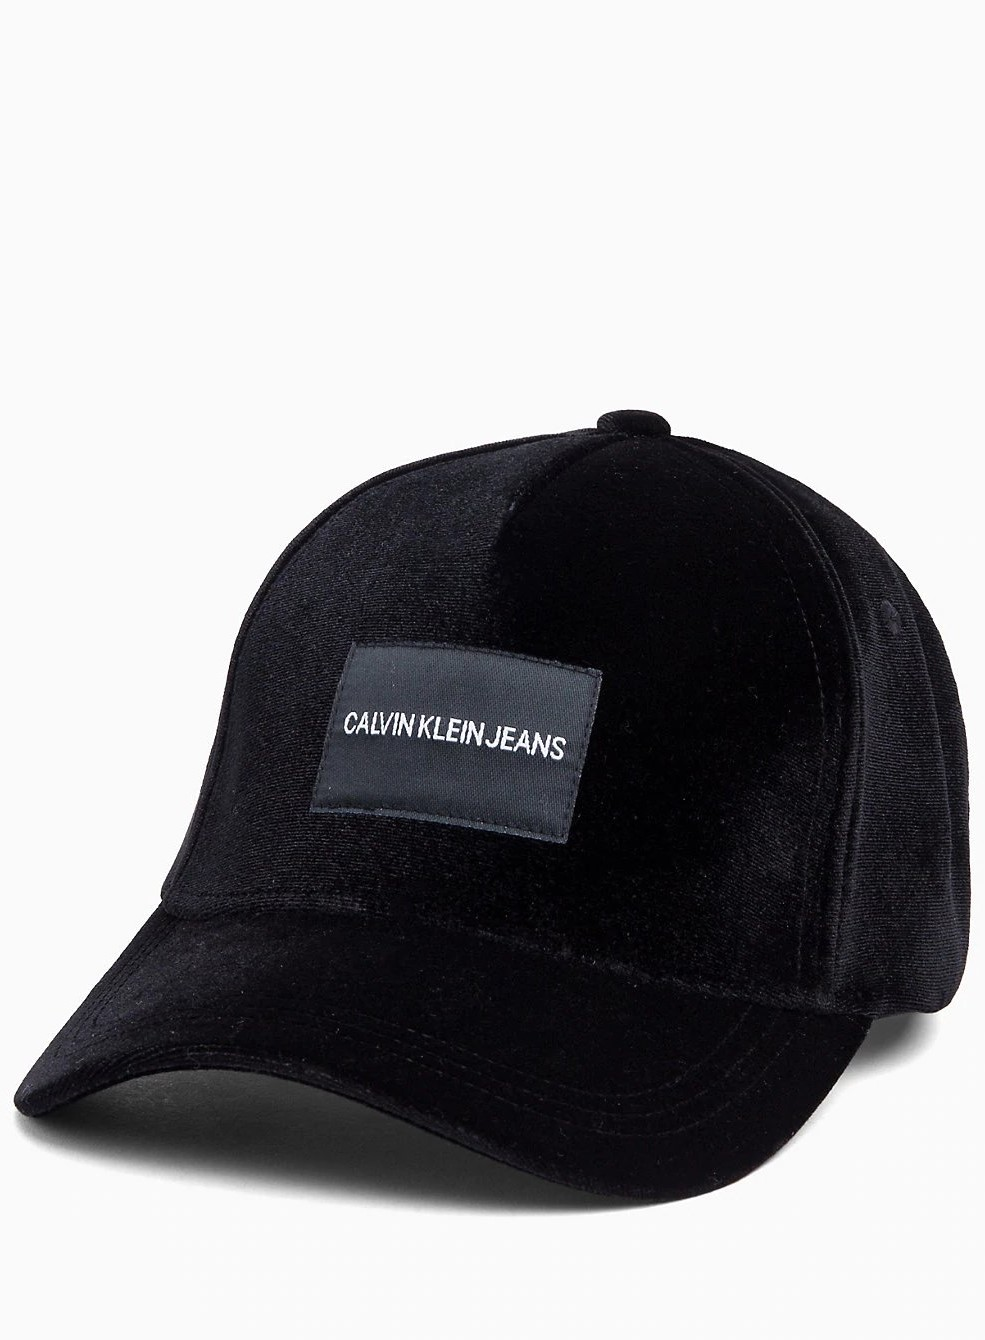 4ad6632640e Calvin Klein black cap J Velvet Cap with the logo - Caps